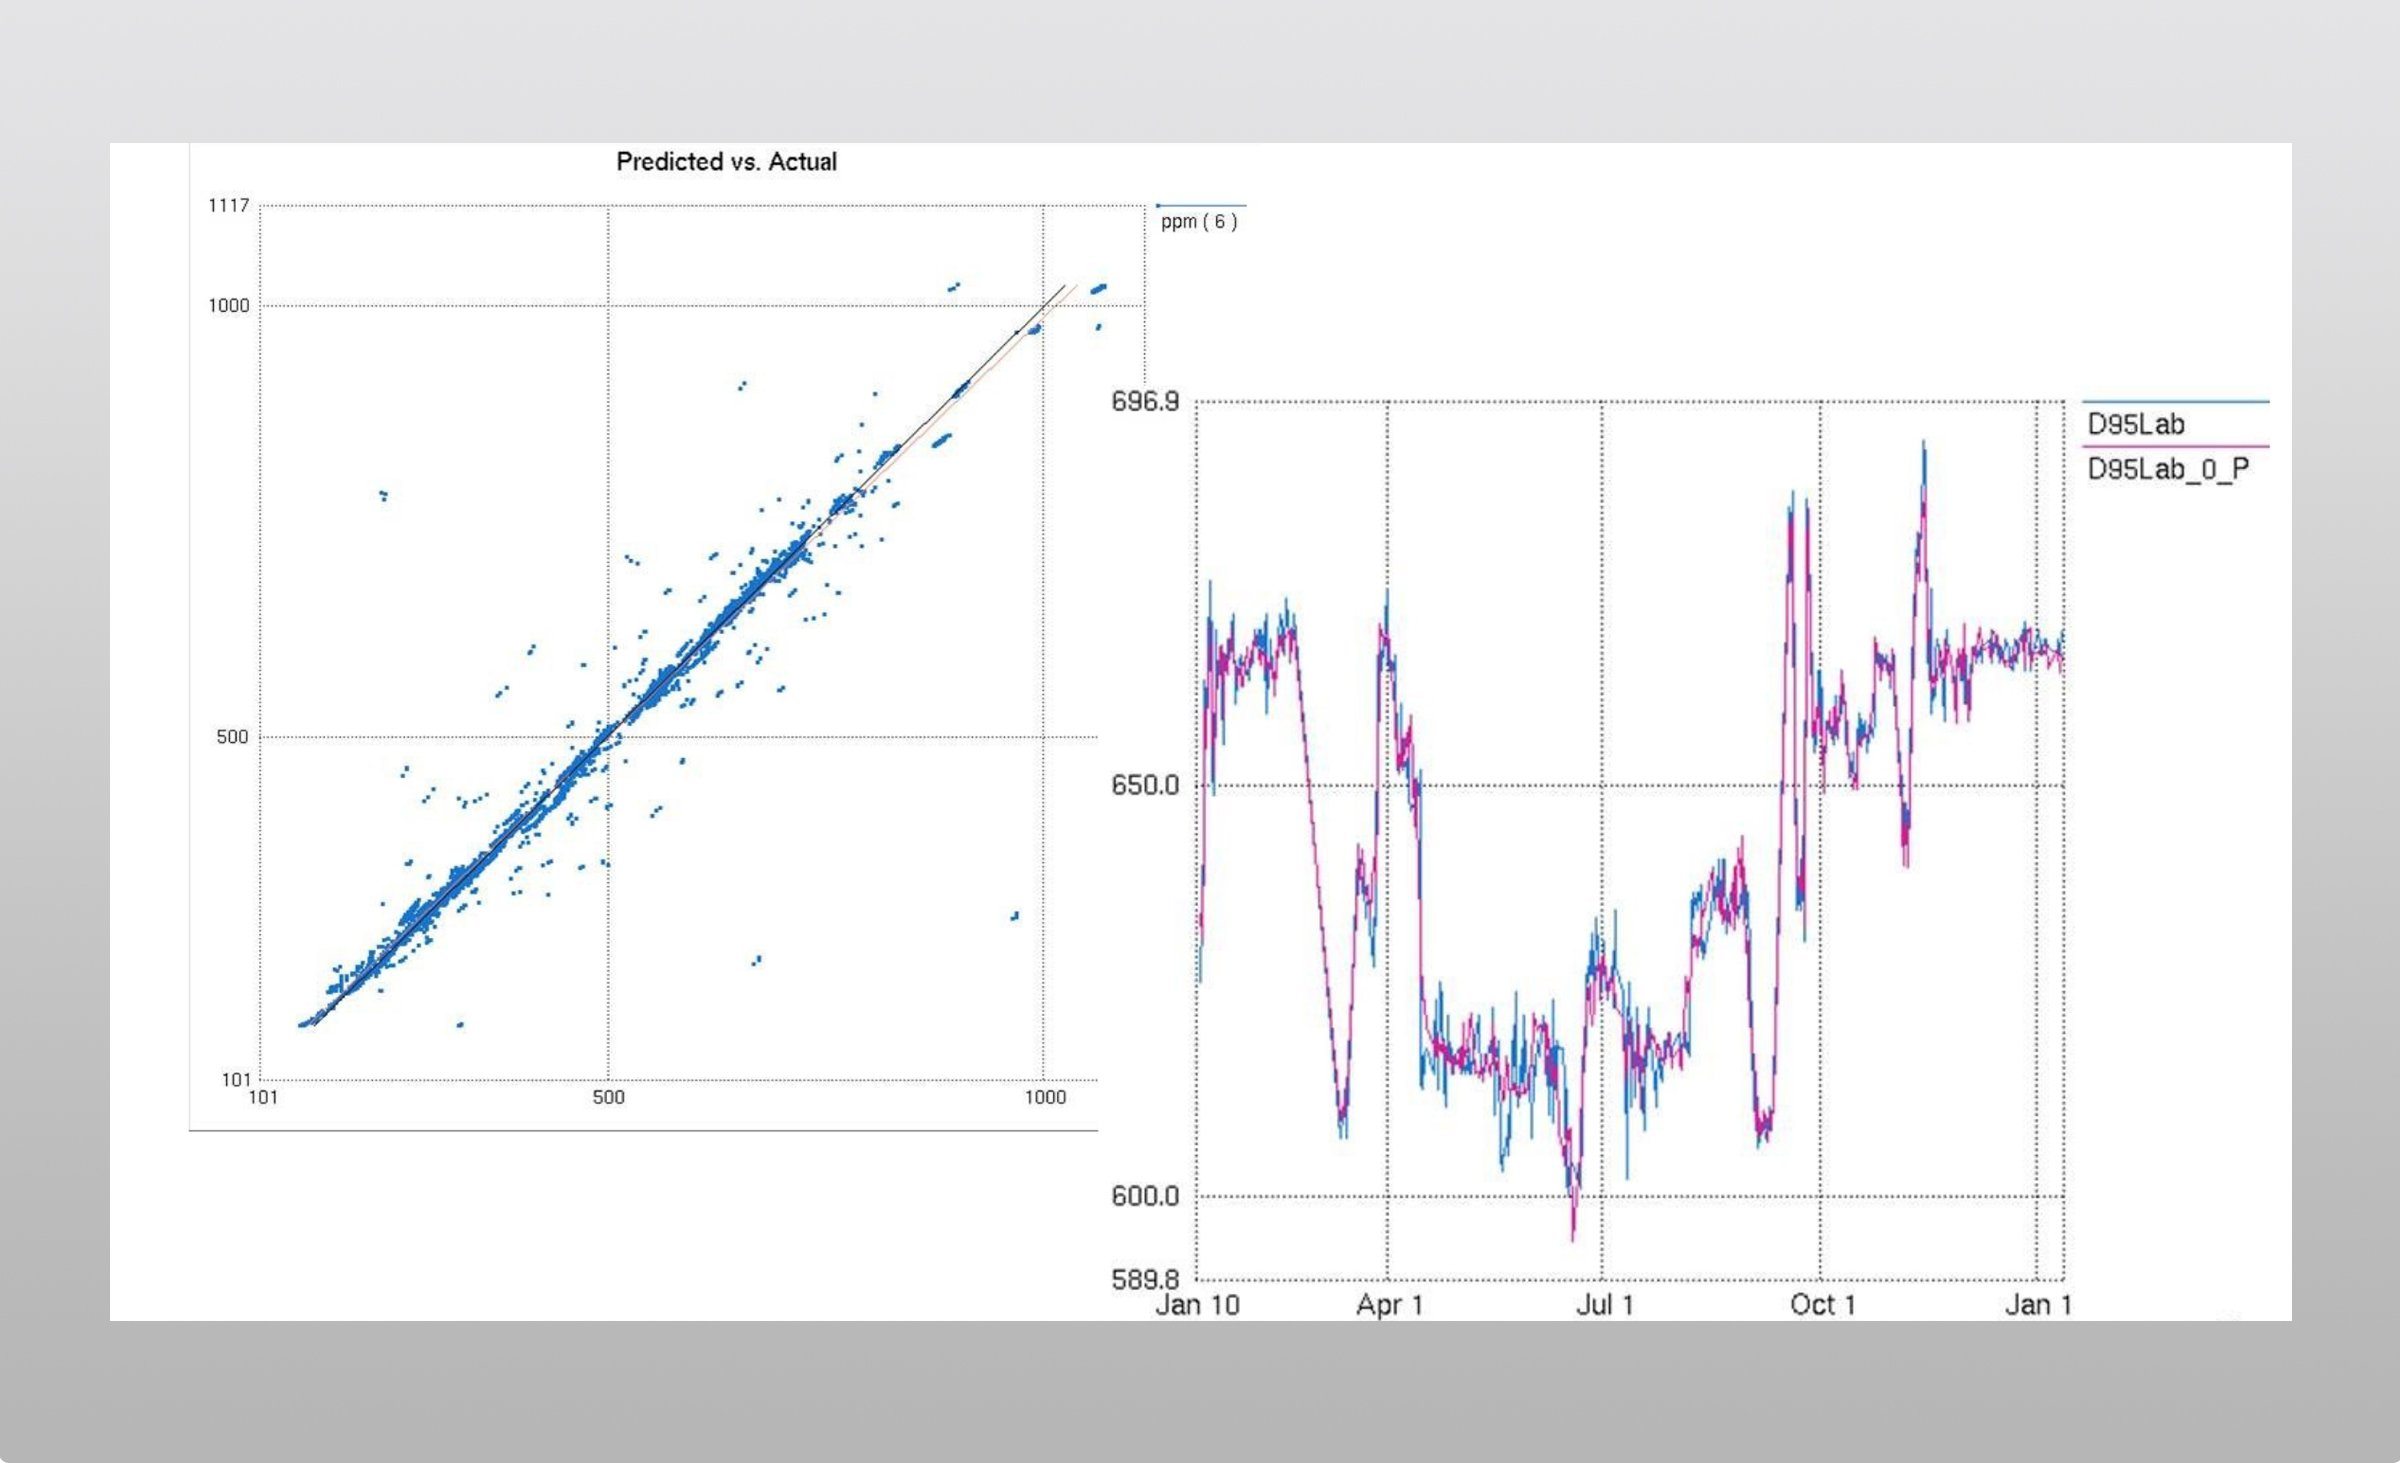 Screen captures from Pavillion8 software showing in-process and predictive data in line charts